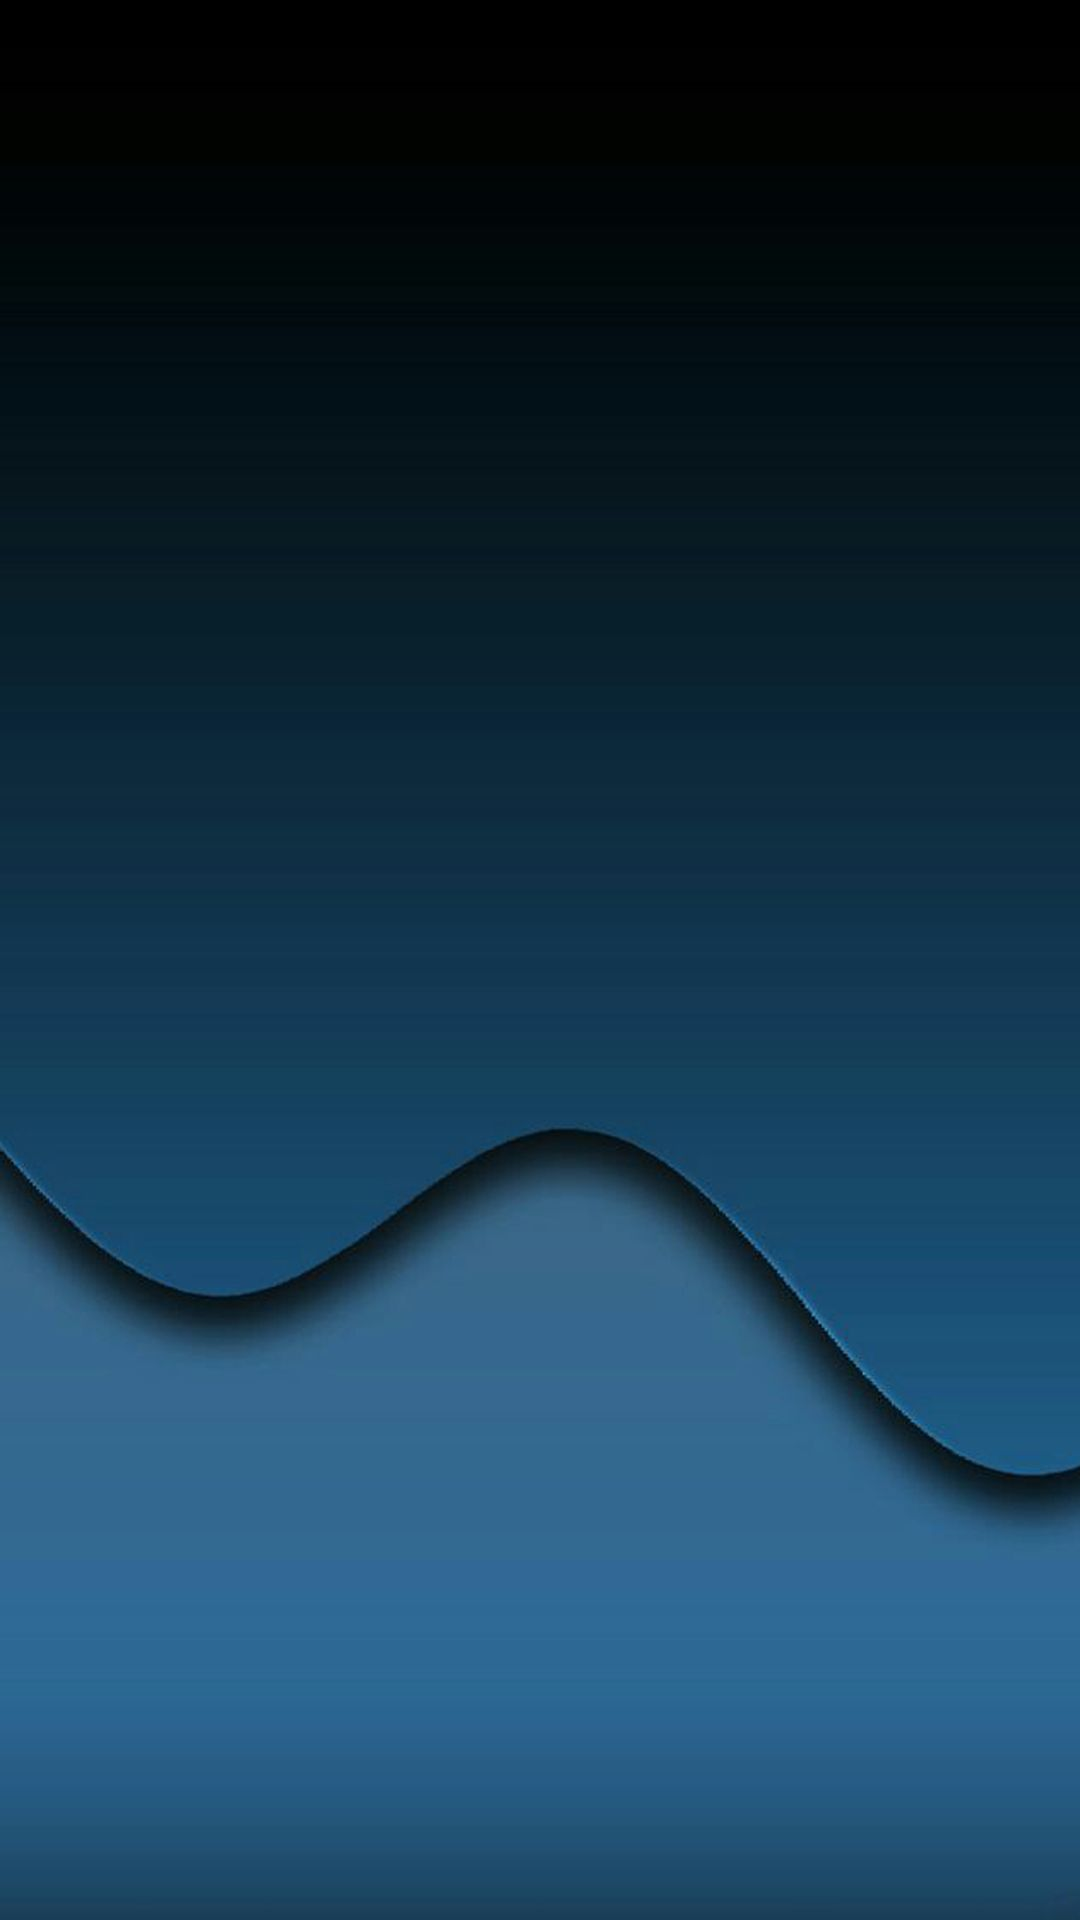 Cool Phone Wallpapers 02 Of 10 With Dark Blue Background And Samsung Galaxy J7 Prime J5